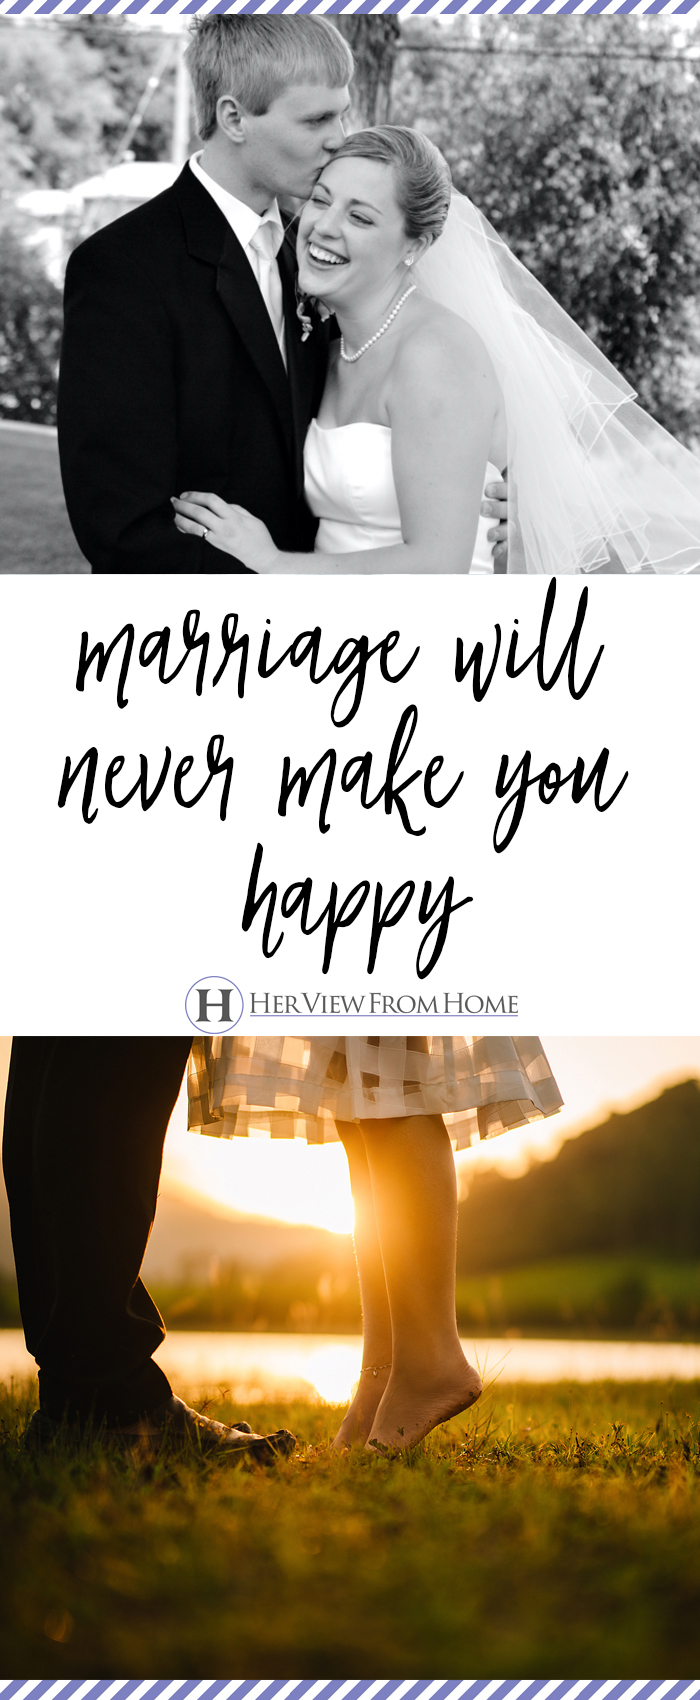 Society tells us marriage is meant to serve you, but society has it exactly backwards . . . because marriage isn't at all about you.